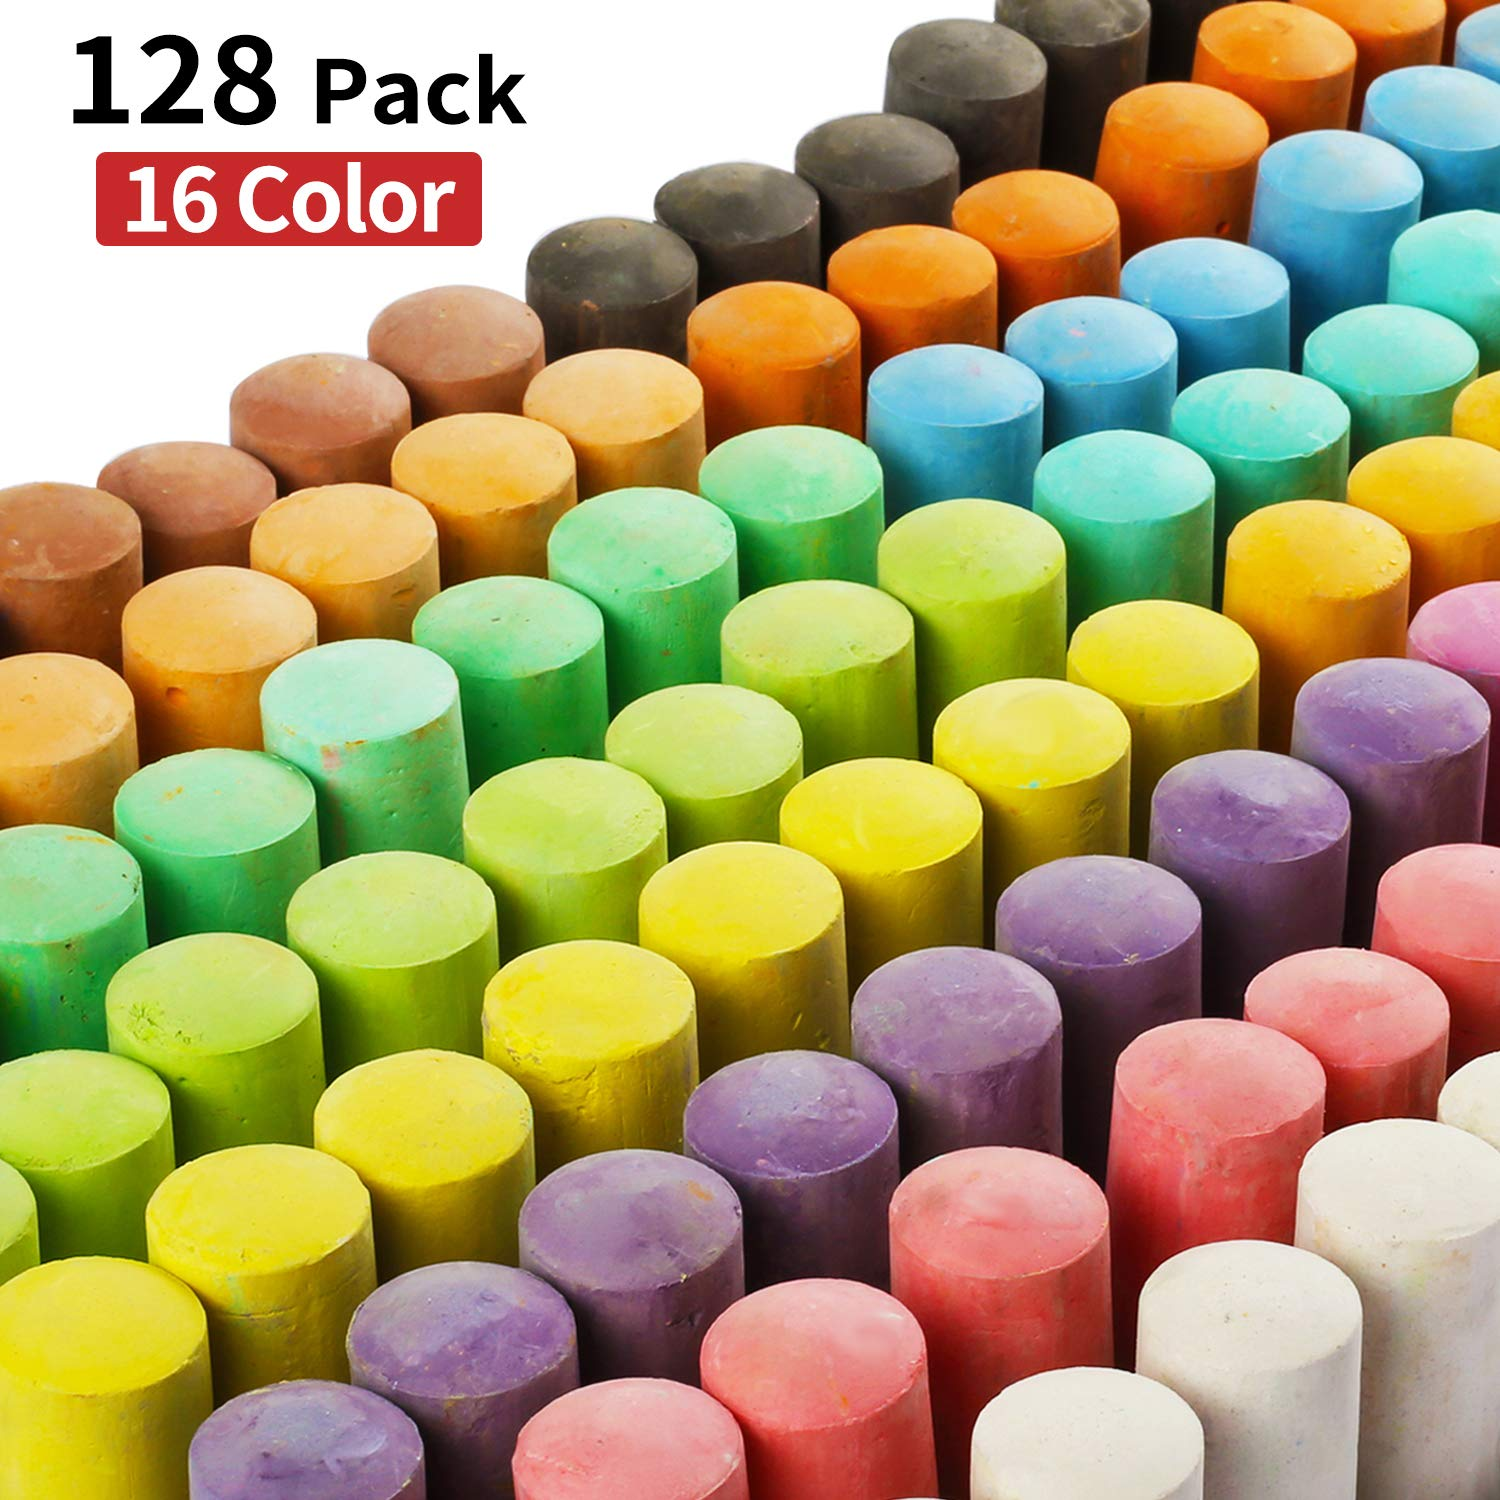 128 Pack 16 Colors Jumbo Sidewalk Chalk Set, Dustless and Washable Art Play For Kid and Adult, Paint on School Classroom Chalkboard, Kitchen, Office Blackboard, Playground, Gift for Birthday Party CHIMAGER